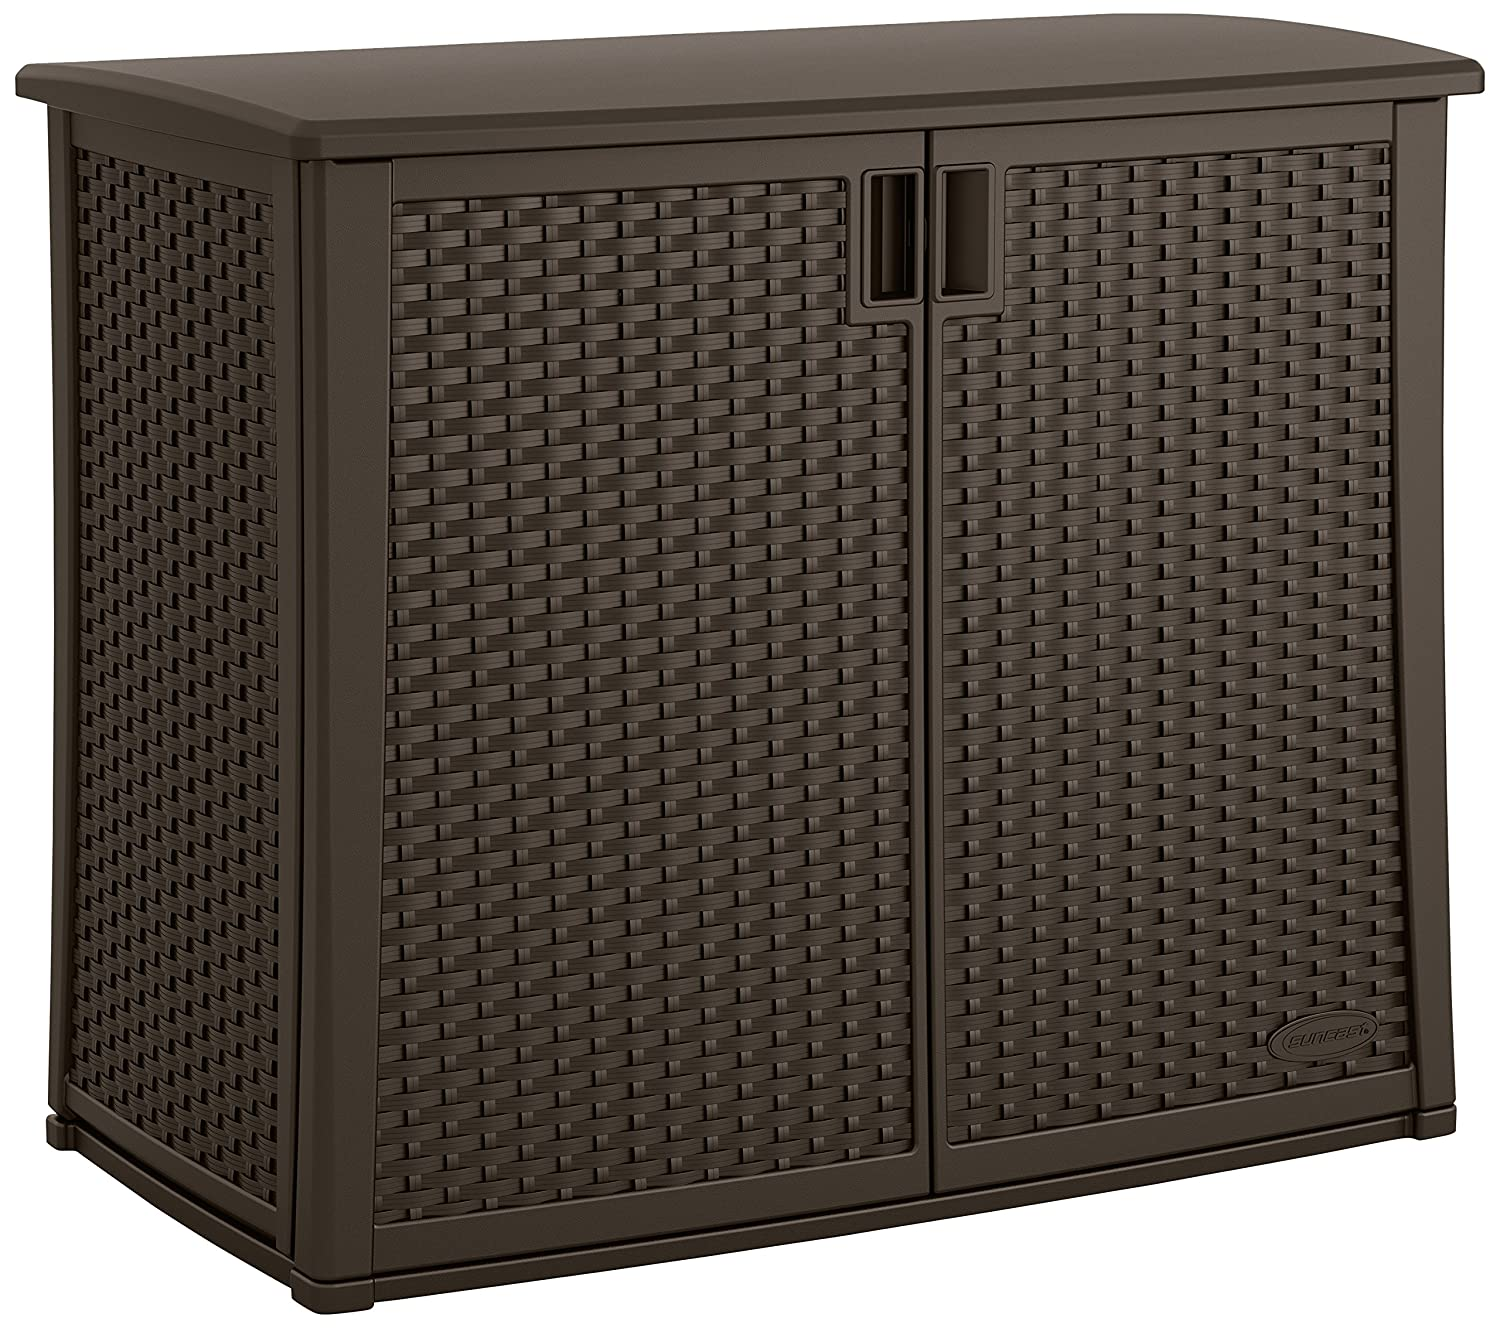 Suncast Elements Outdoor 40-Inch Wide Cabinet BMOC4100